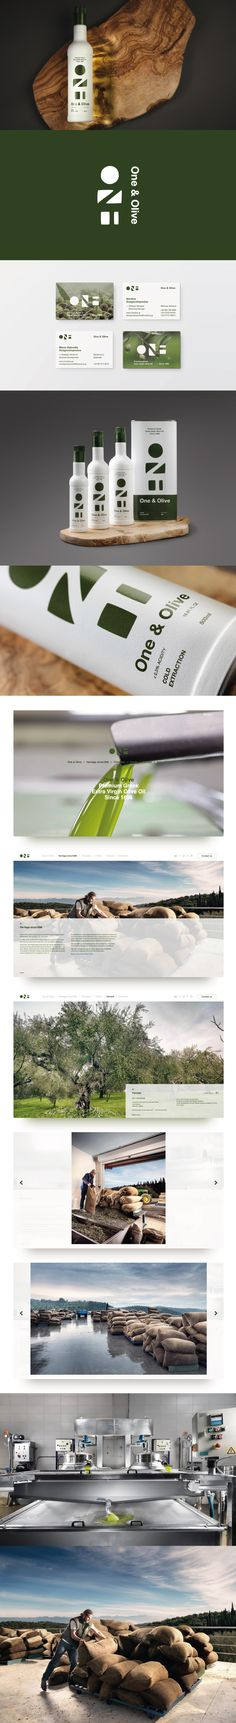 Branding, packaging, photography, web design and web development project for One & Olive, Premium Greek Extra Virgin Olive Oil from the beautiful village of Manessi, Messinia, Greece.